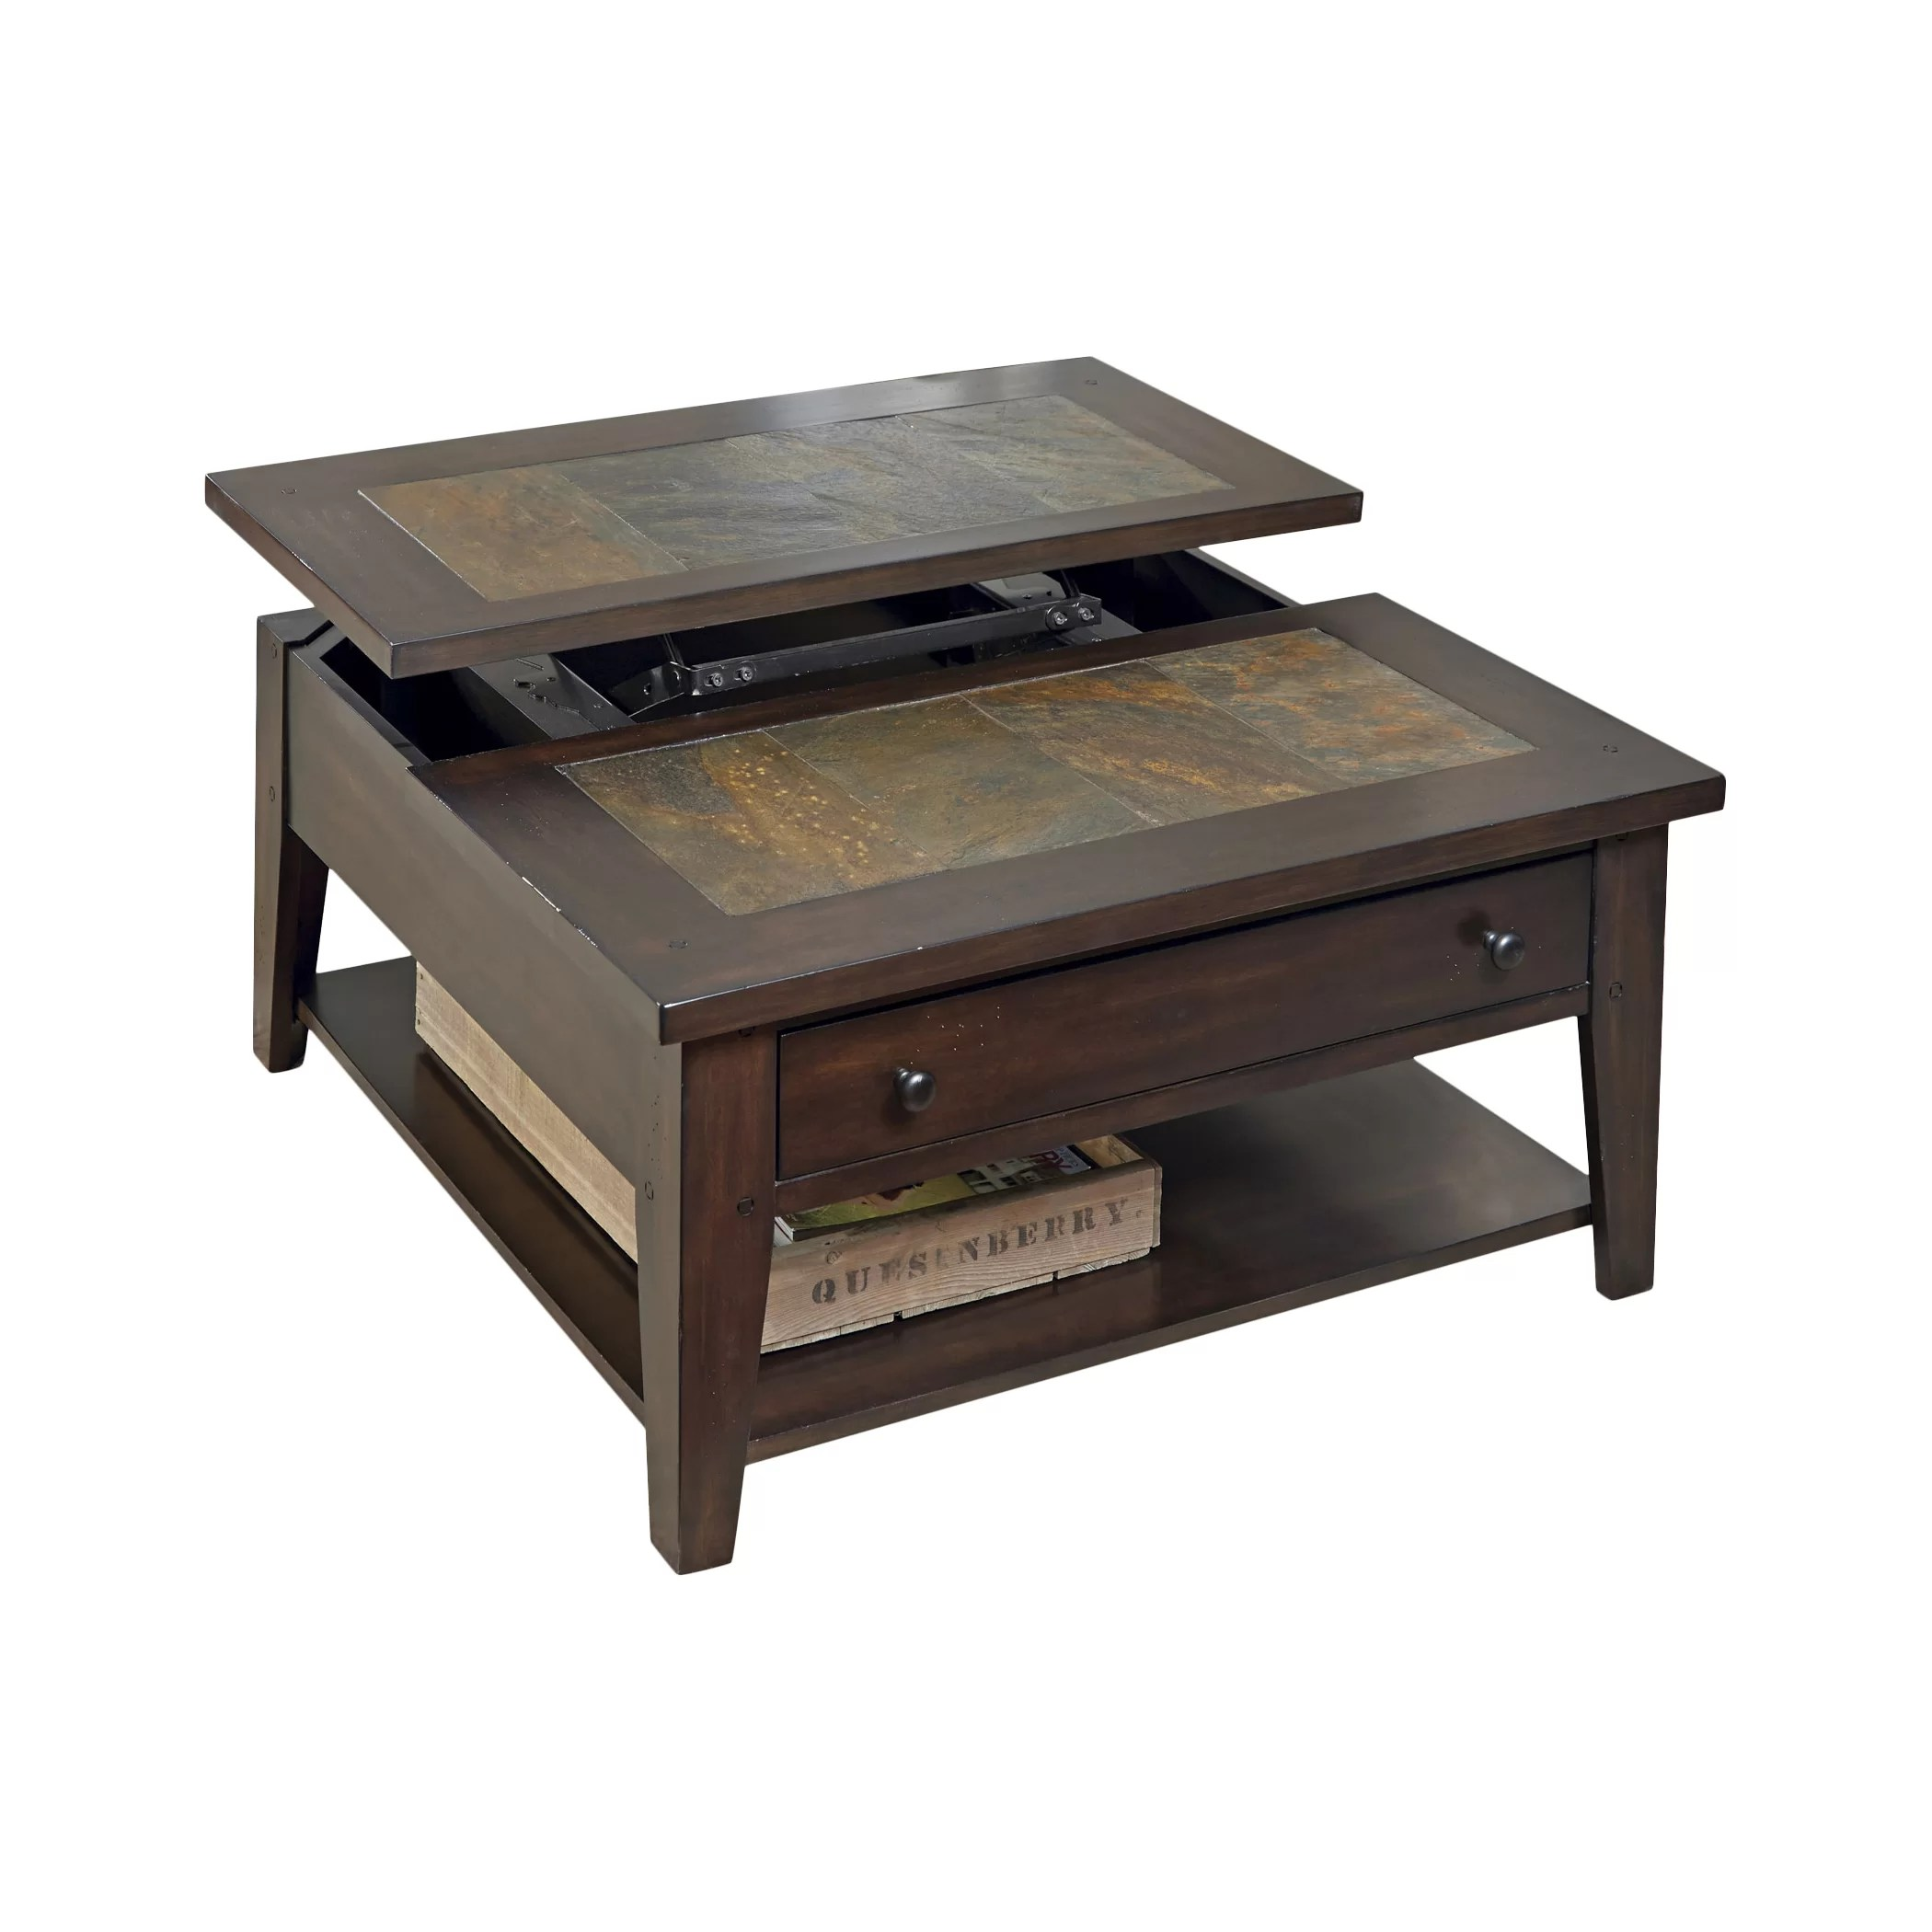 Top Lift Coffee Table Loon Peak Leadville North Coffee Table With Lift Top